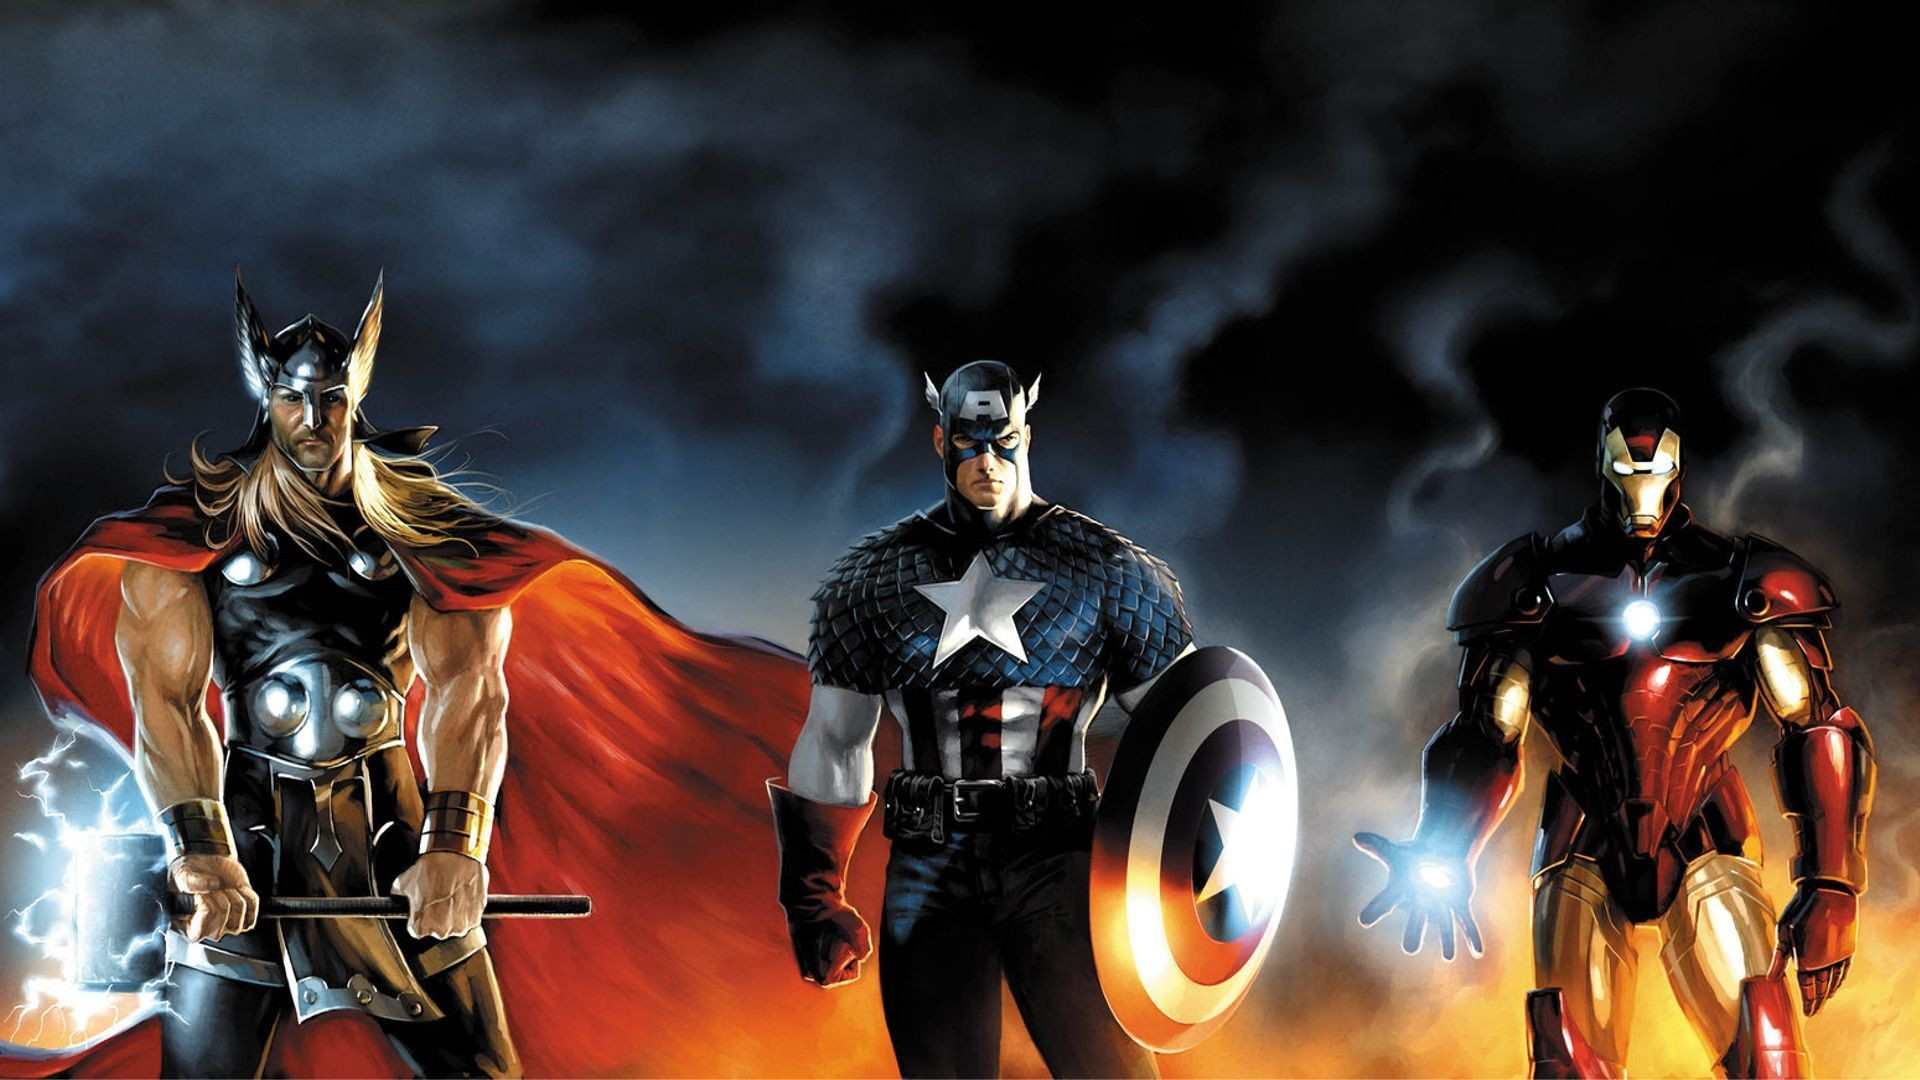 Avengers Hd Wallpapers 1080p 80 Images